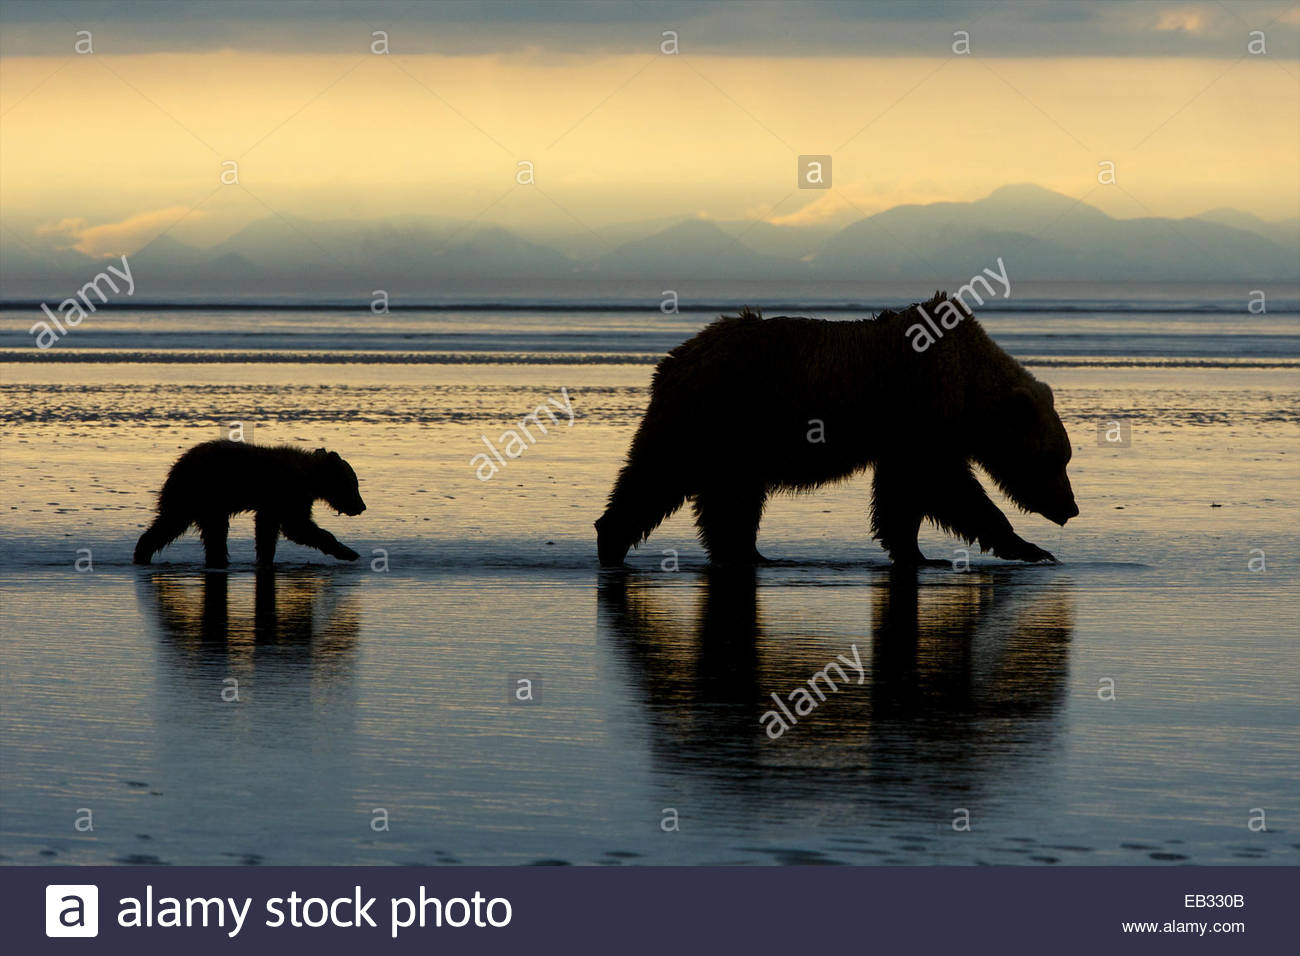 A grizzly bear cub follows right behind mom early in the morning. - Stock Image